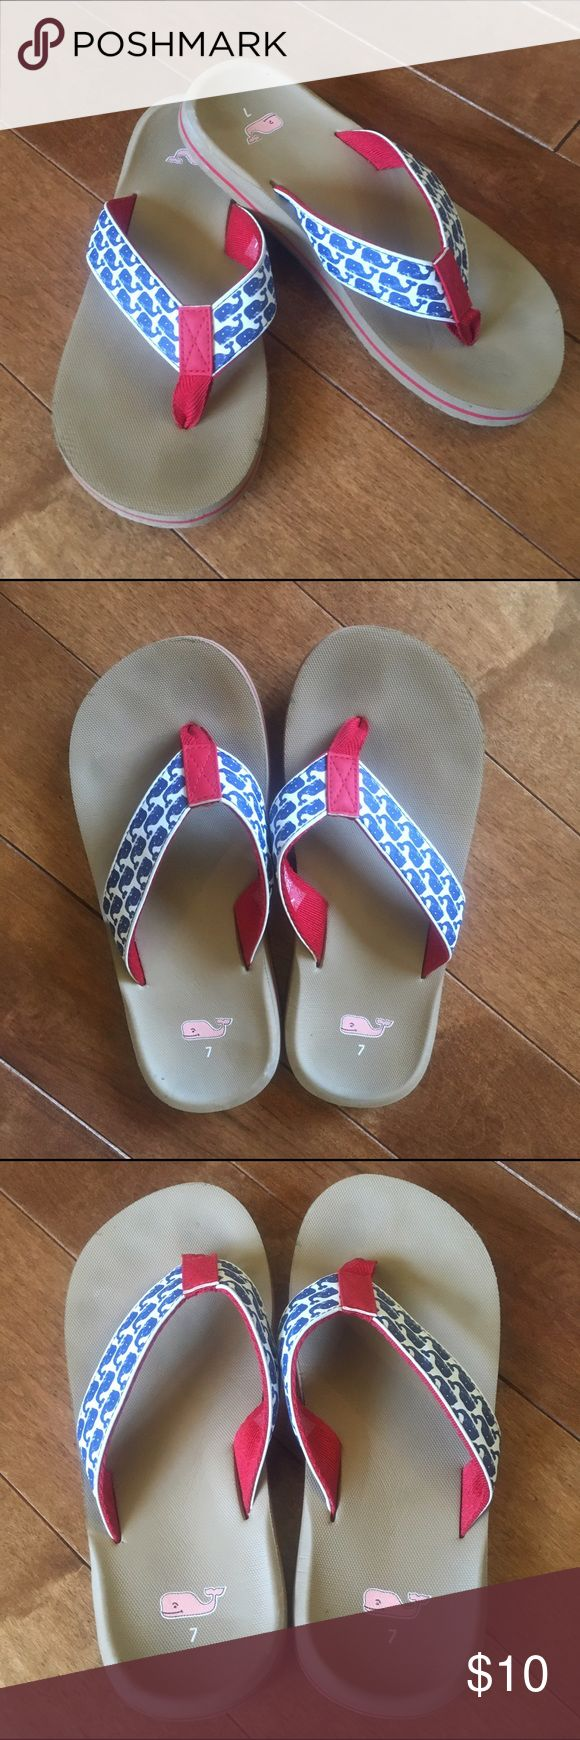 Vineyard Vines Whales Flip Flops - Size 7 Good used condition!! Most of wear is on the bottom of the shoes. Has a mark on the side of right Flip flop, and little marks on left Flip Flop heel. (See pics).                                                                Red, white, and navy blue with a tan bottom. Size 7 Vineyard Vines Shoes